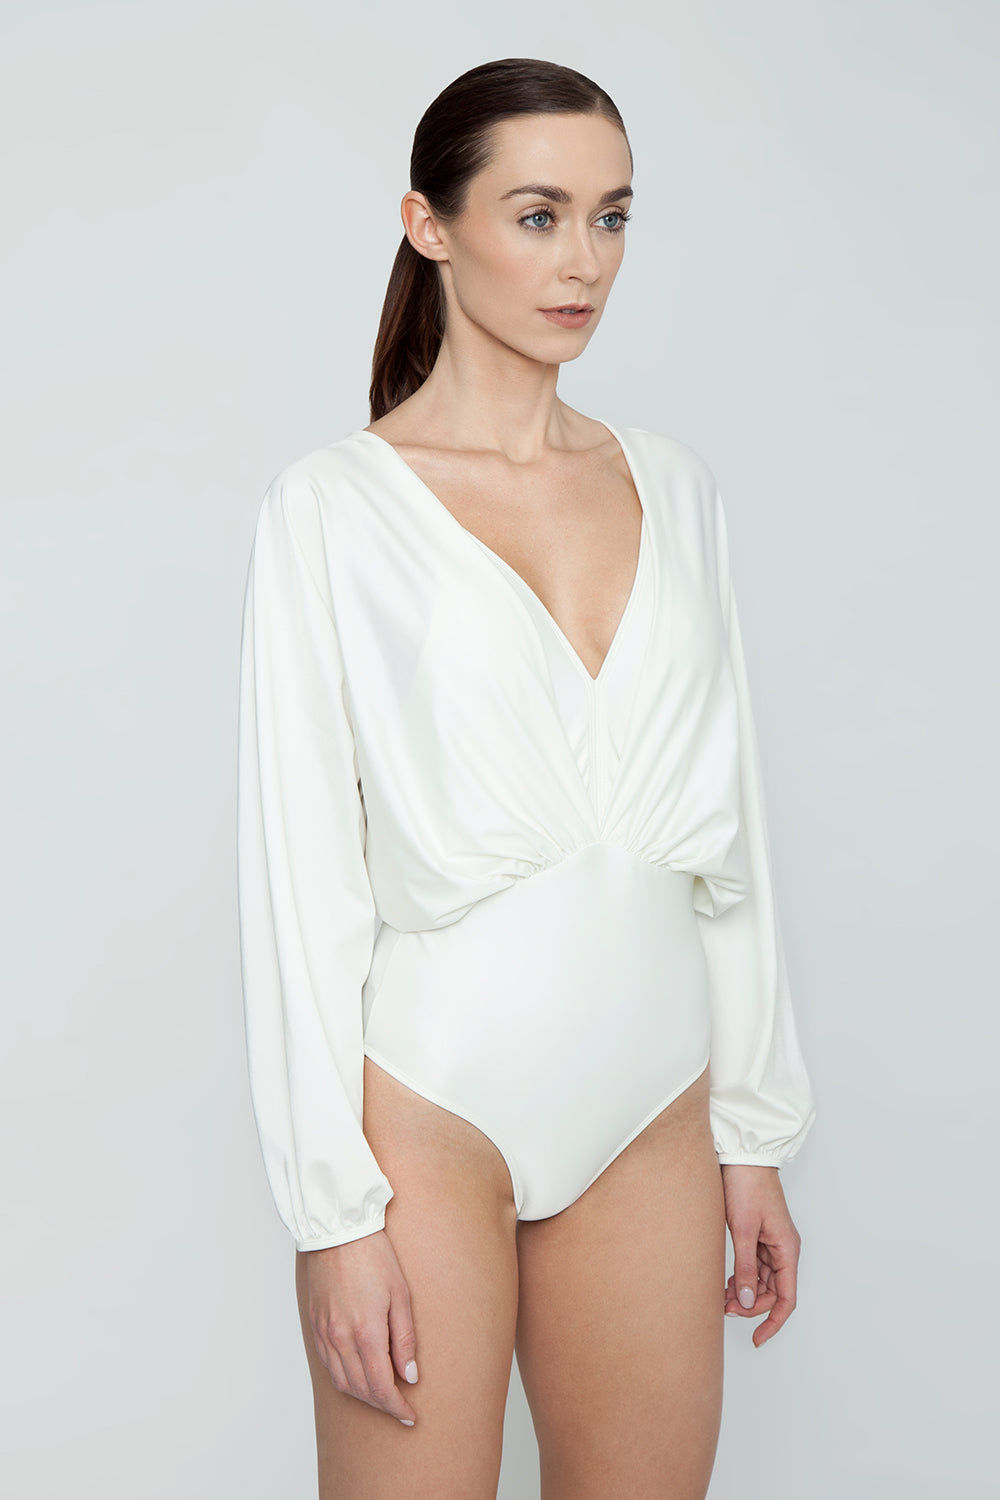 AGUA DE COCO Brazilian Long Sleeves One Piece Swimsuit - Off White One Piece | Off White| Agua De Coco Brazilian Long Sleeves One Piece Swimsuit - Off White White one piece Plunging v neckline Gathered fabric  Long sleeves  Open back detail  Cheeky - moderate coverage Side View